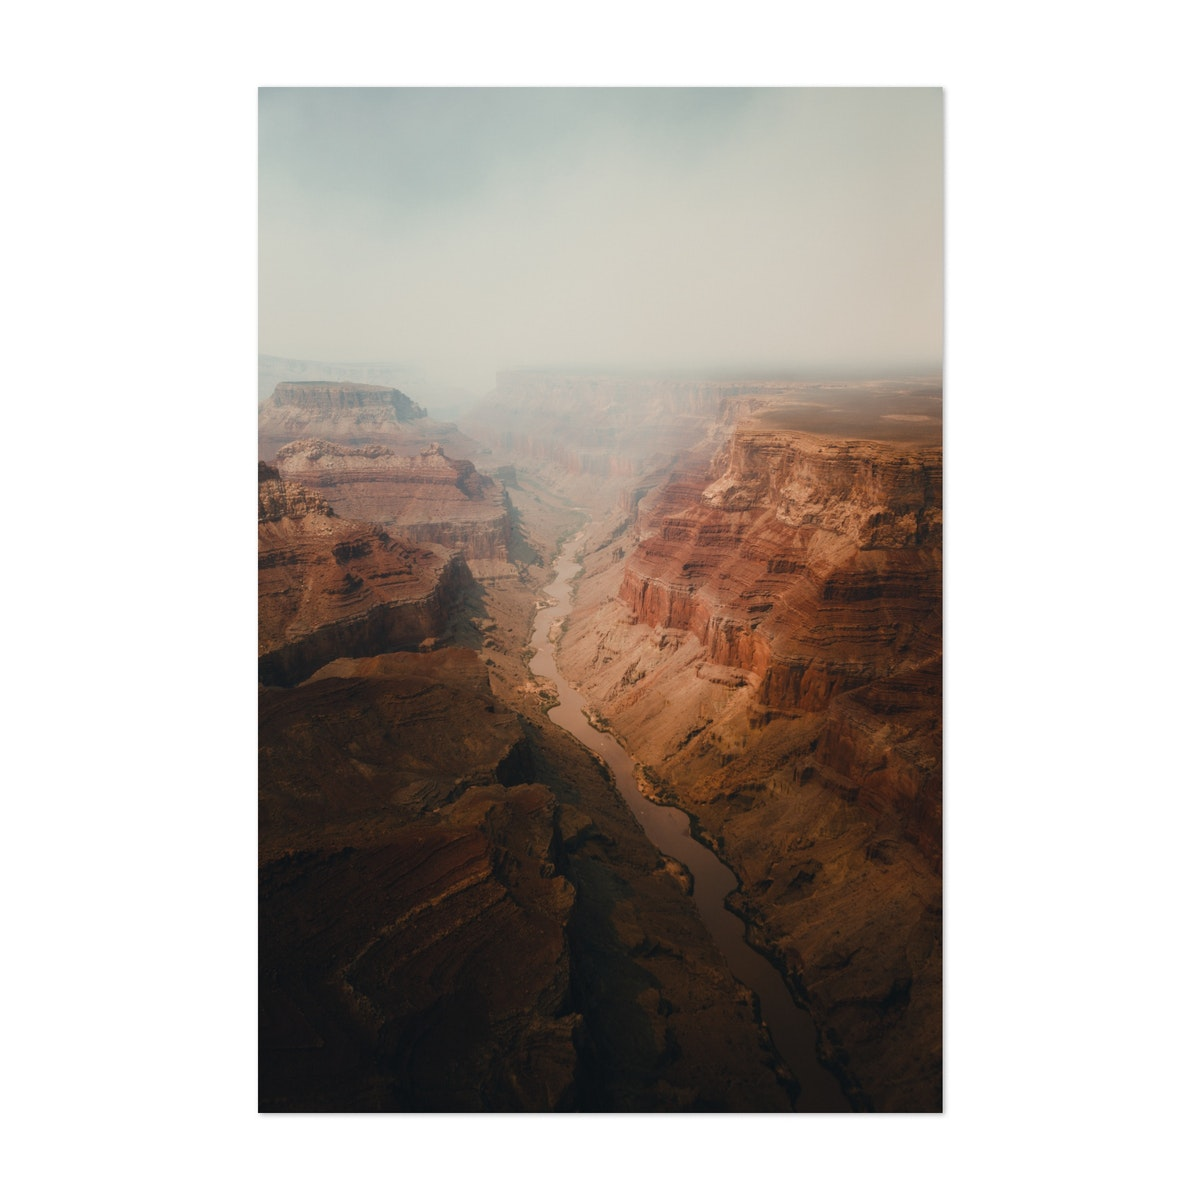 Fire Haze in the Canyon